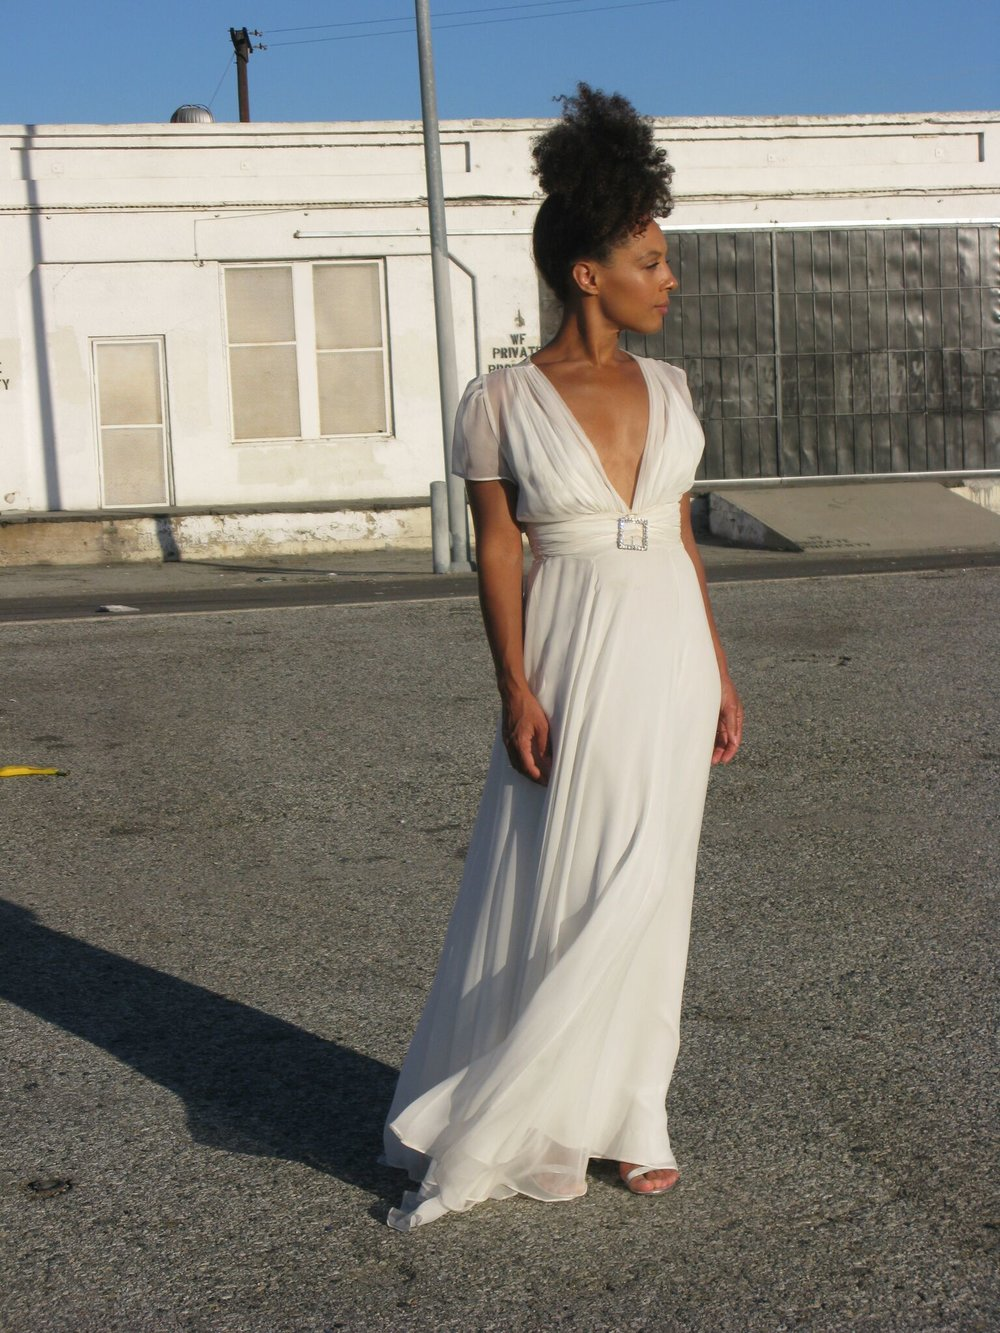 Michael Chiffon 3_preview.jpeg